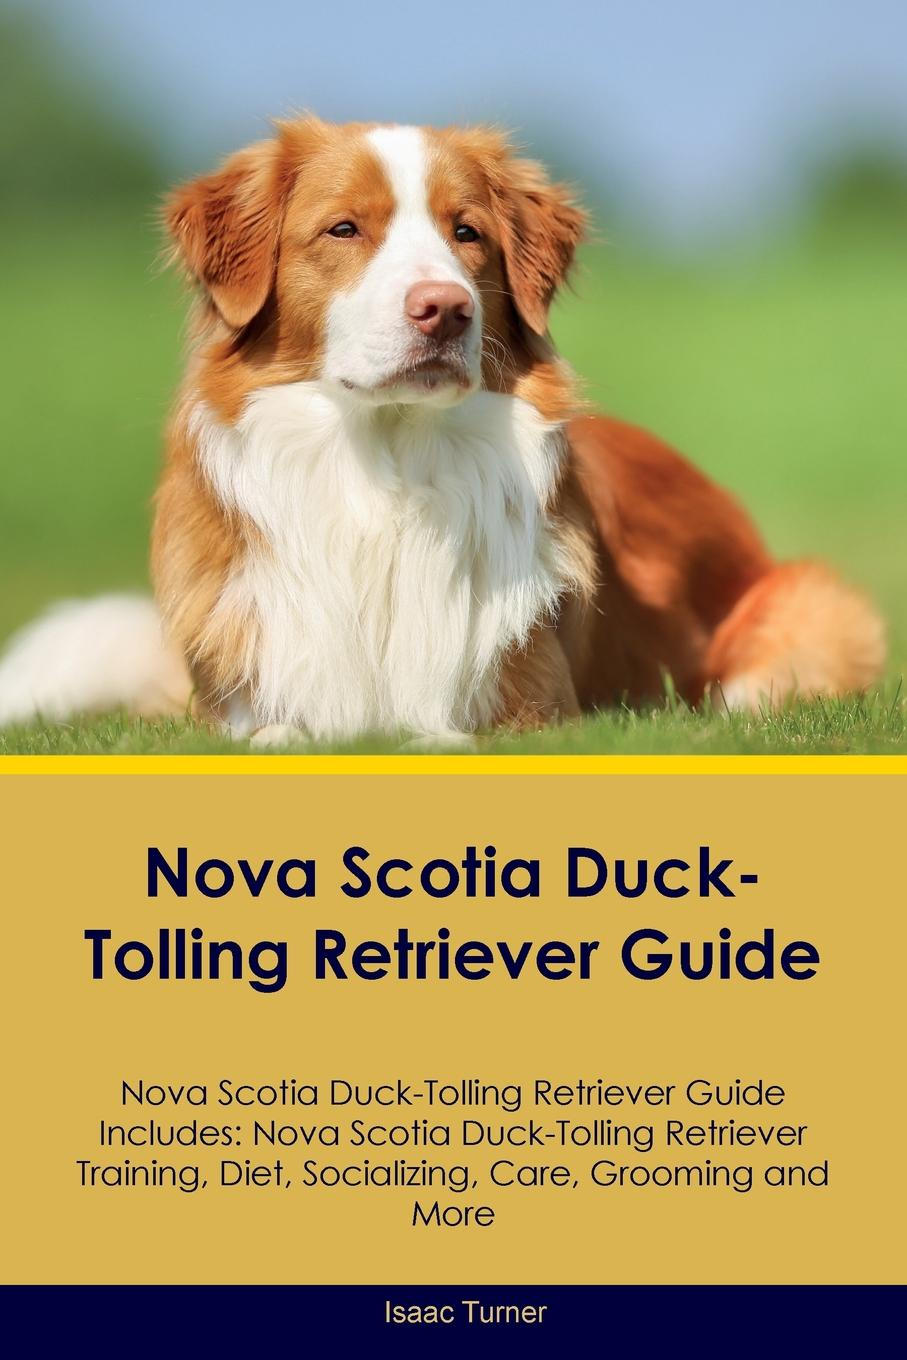 Isaac Turner Nova Scotia Duck-Tolling Retriever Guide Nova Scotia Duck-Tolling Retriever Guide Includes. Nova Scotia Duck-Tolling Retriever Training, Diet, Socializing, Care, Grooming, Breeding and More